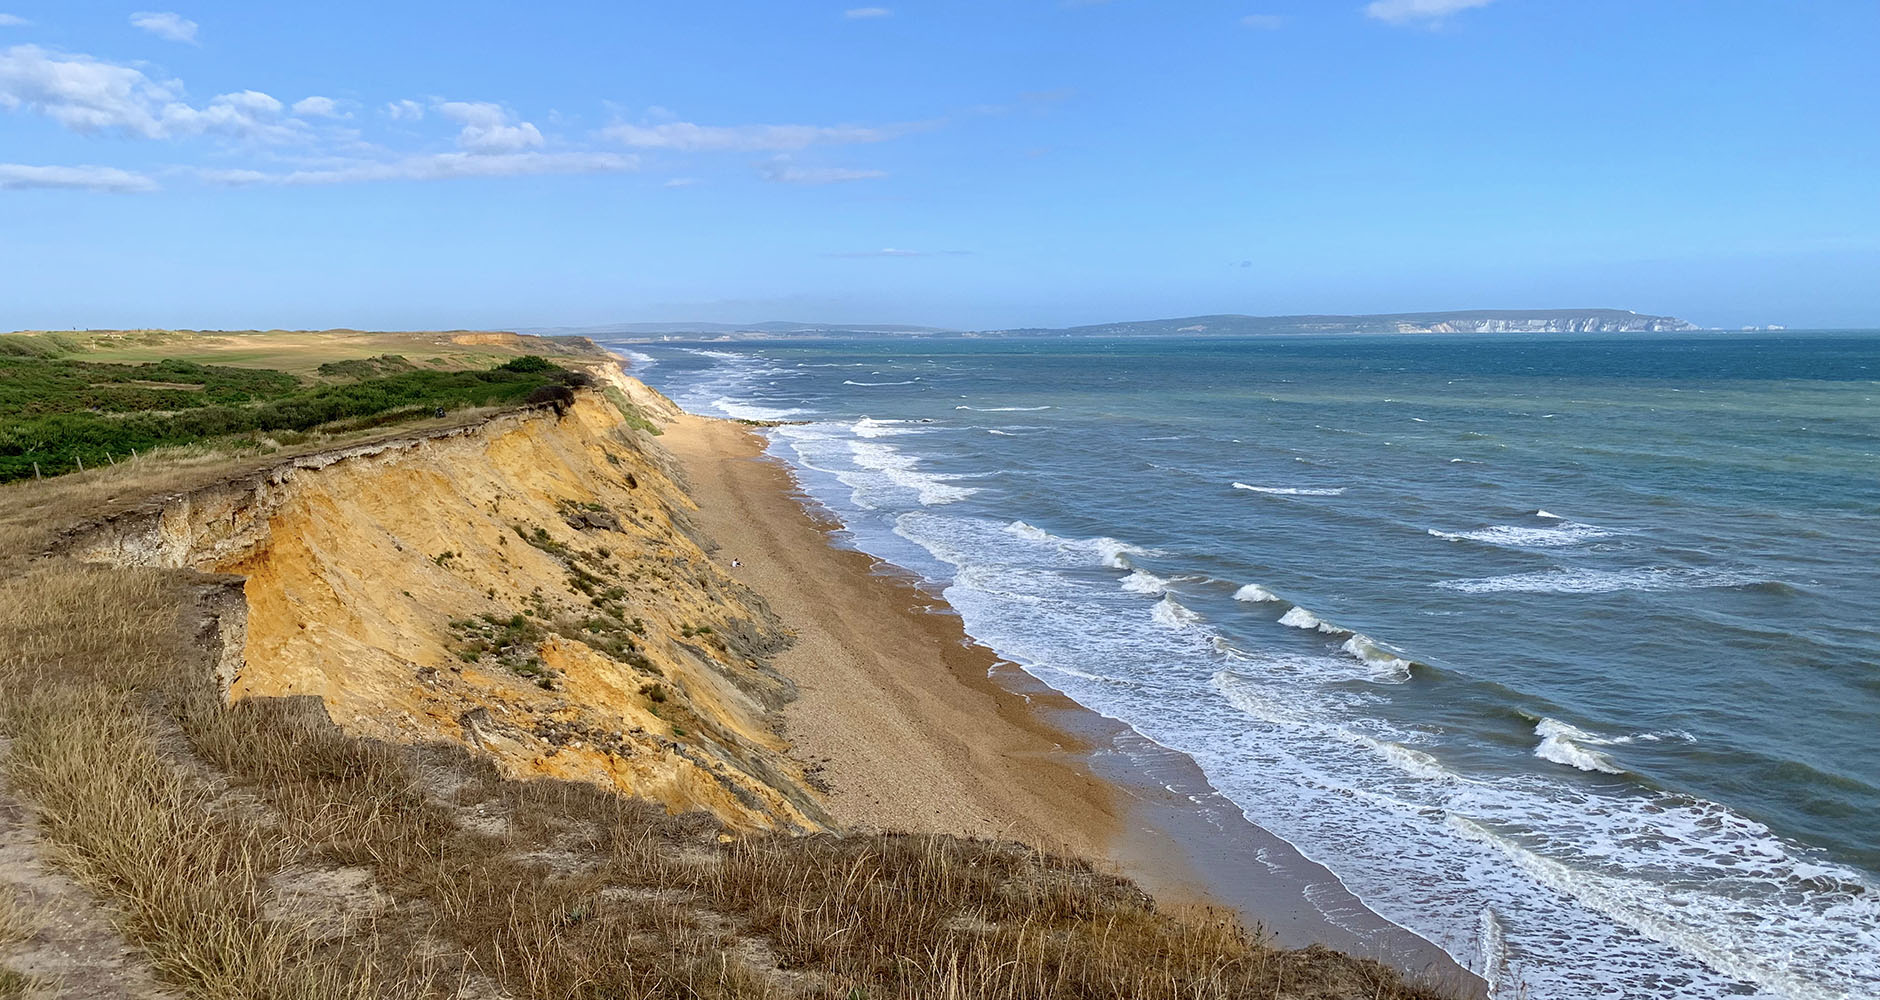 The best beach views on the Barton-on-Sea cliff tops